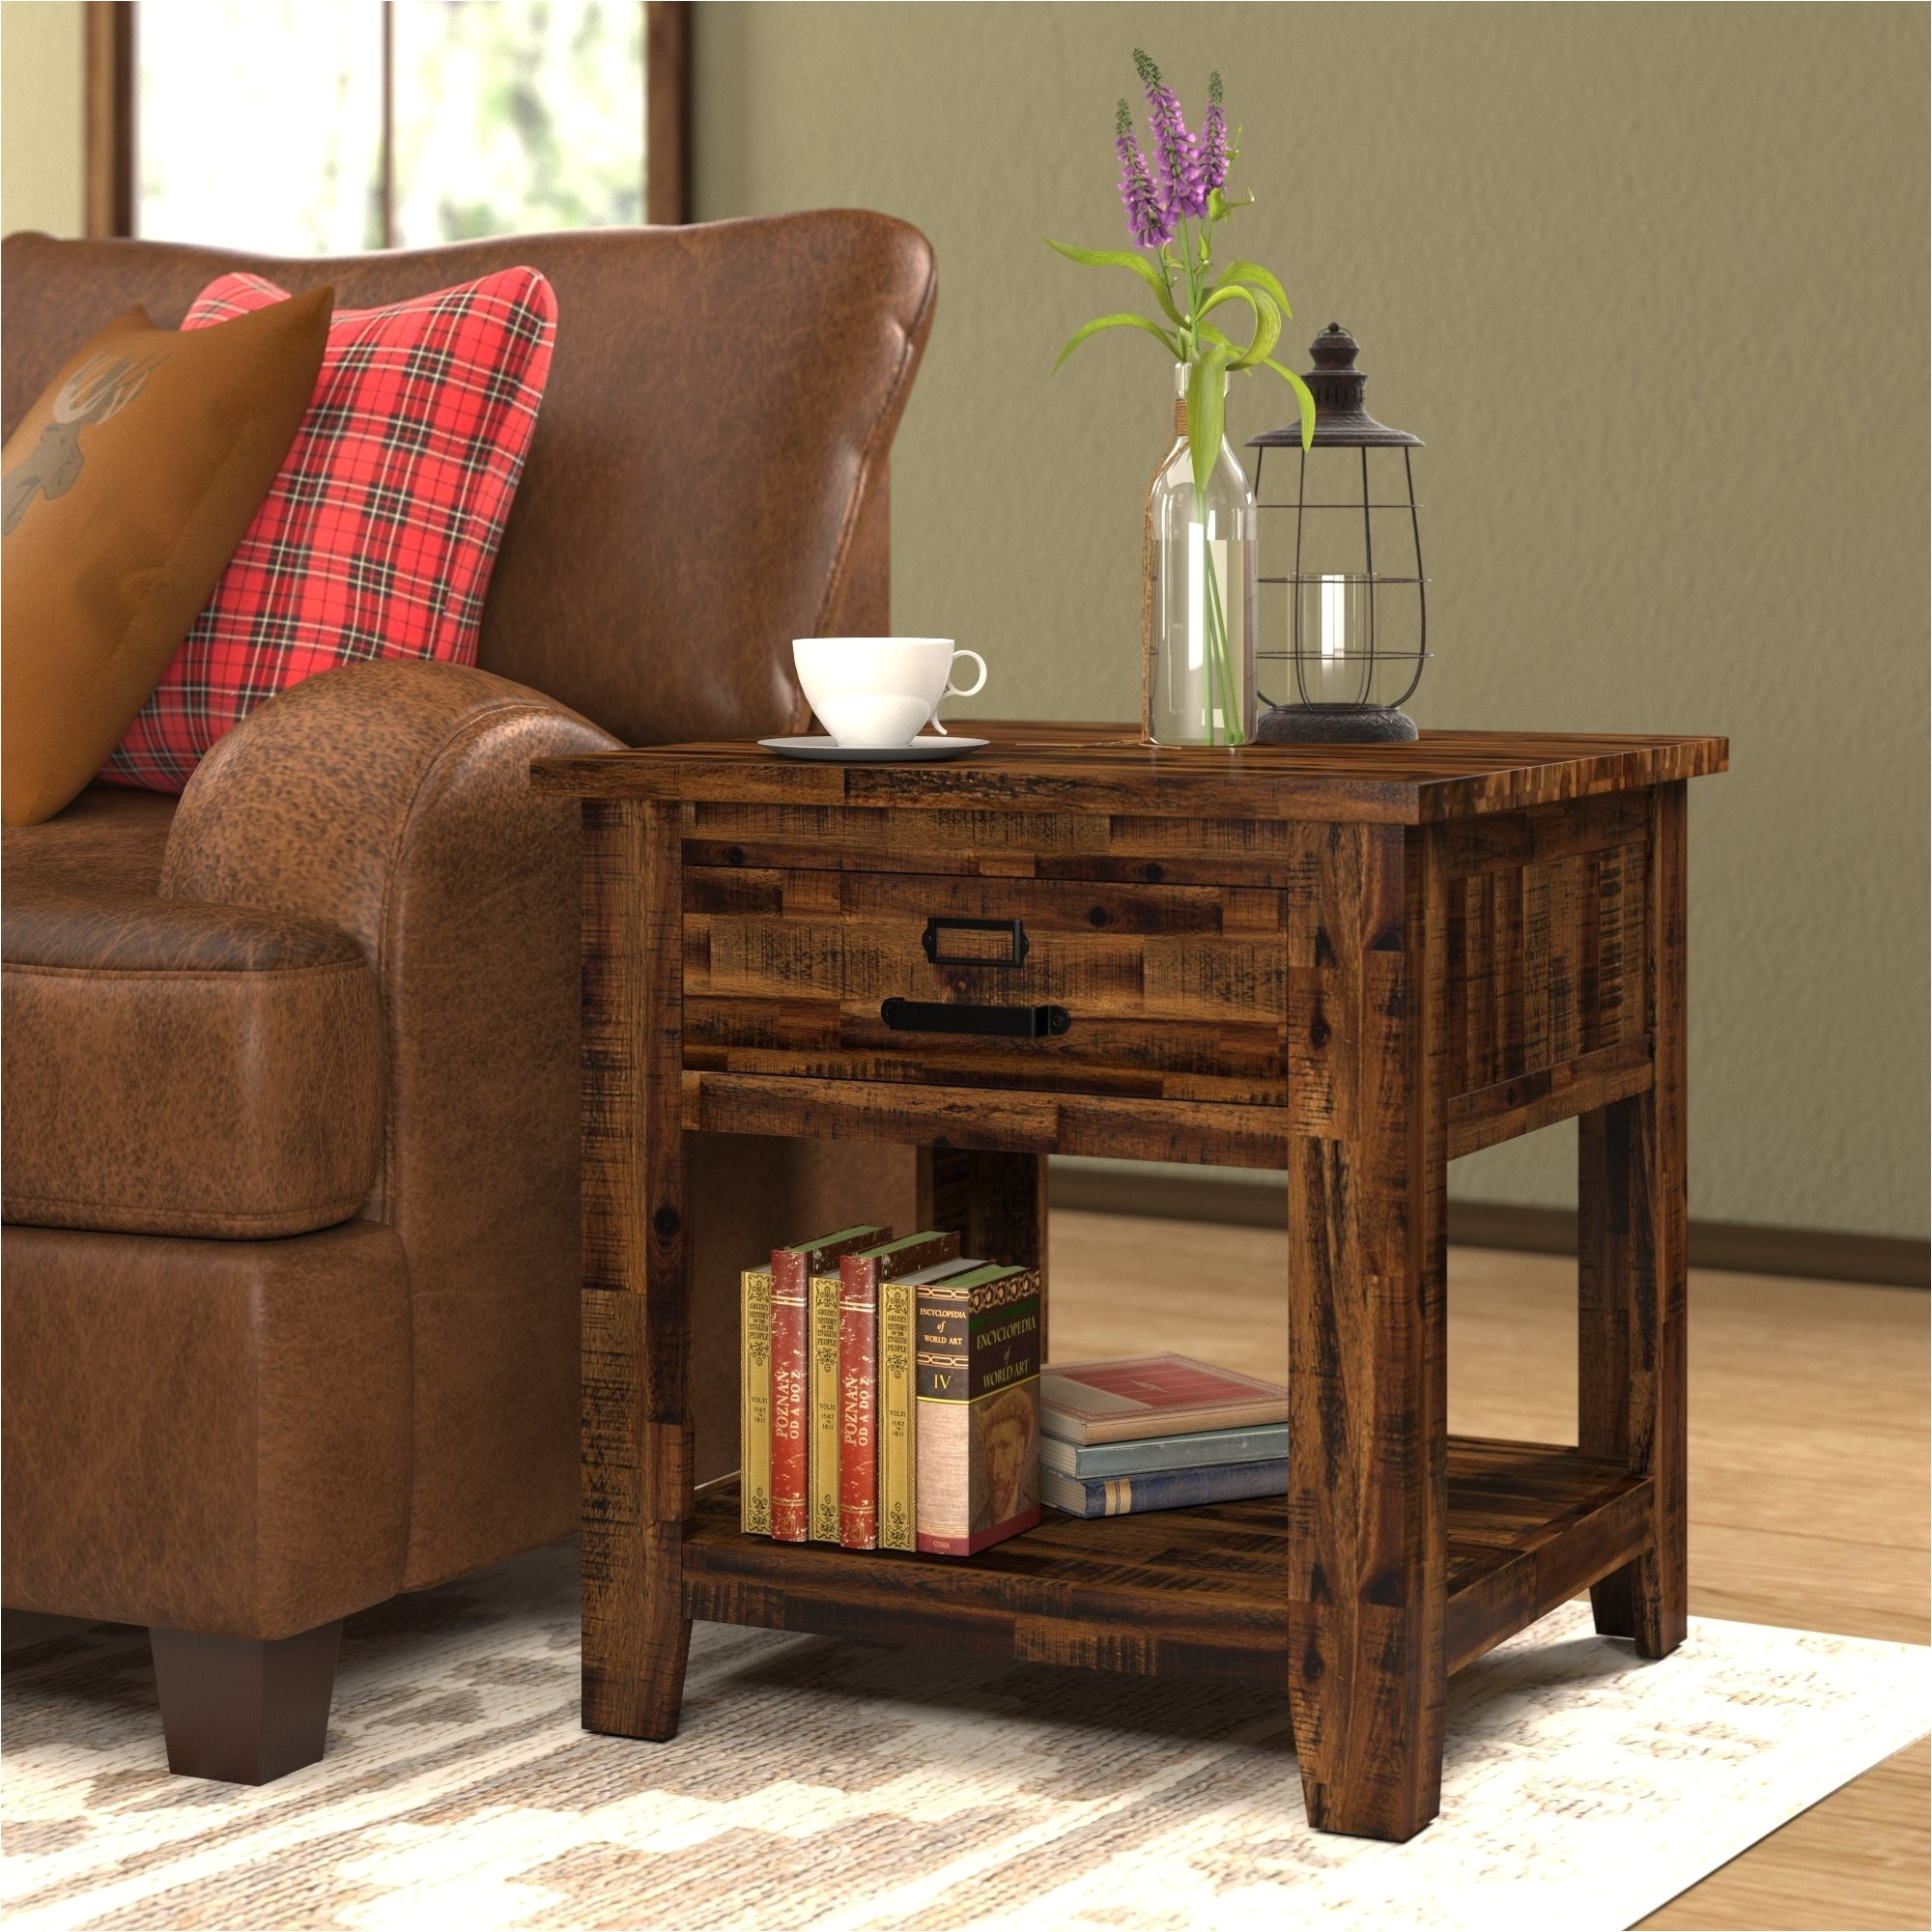 Licious Black Side Tables For Living Room Refrence Living Room Small Marble Coffee Table Fresh Living Room And End